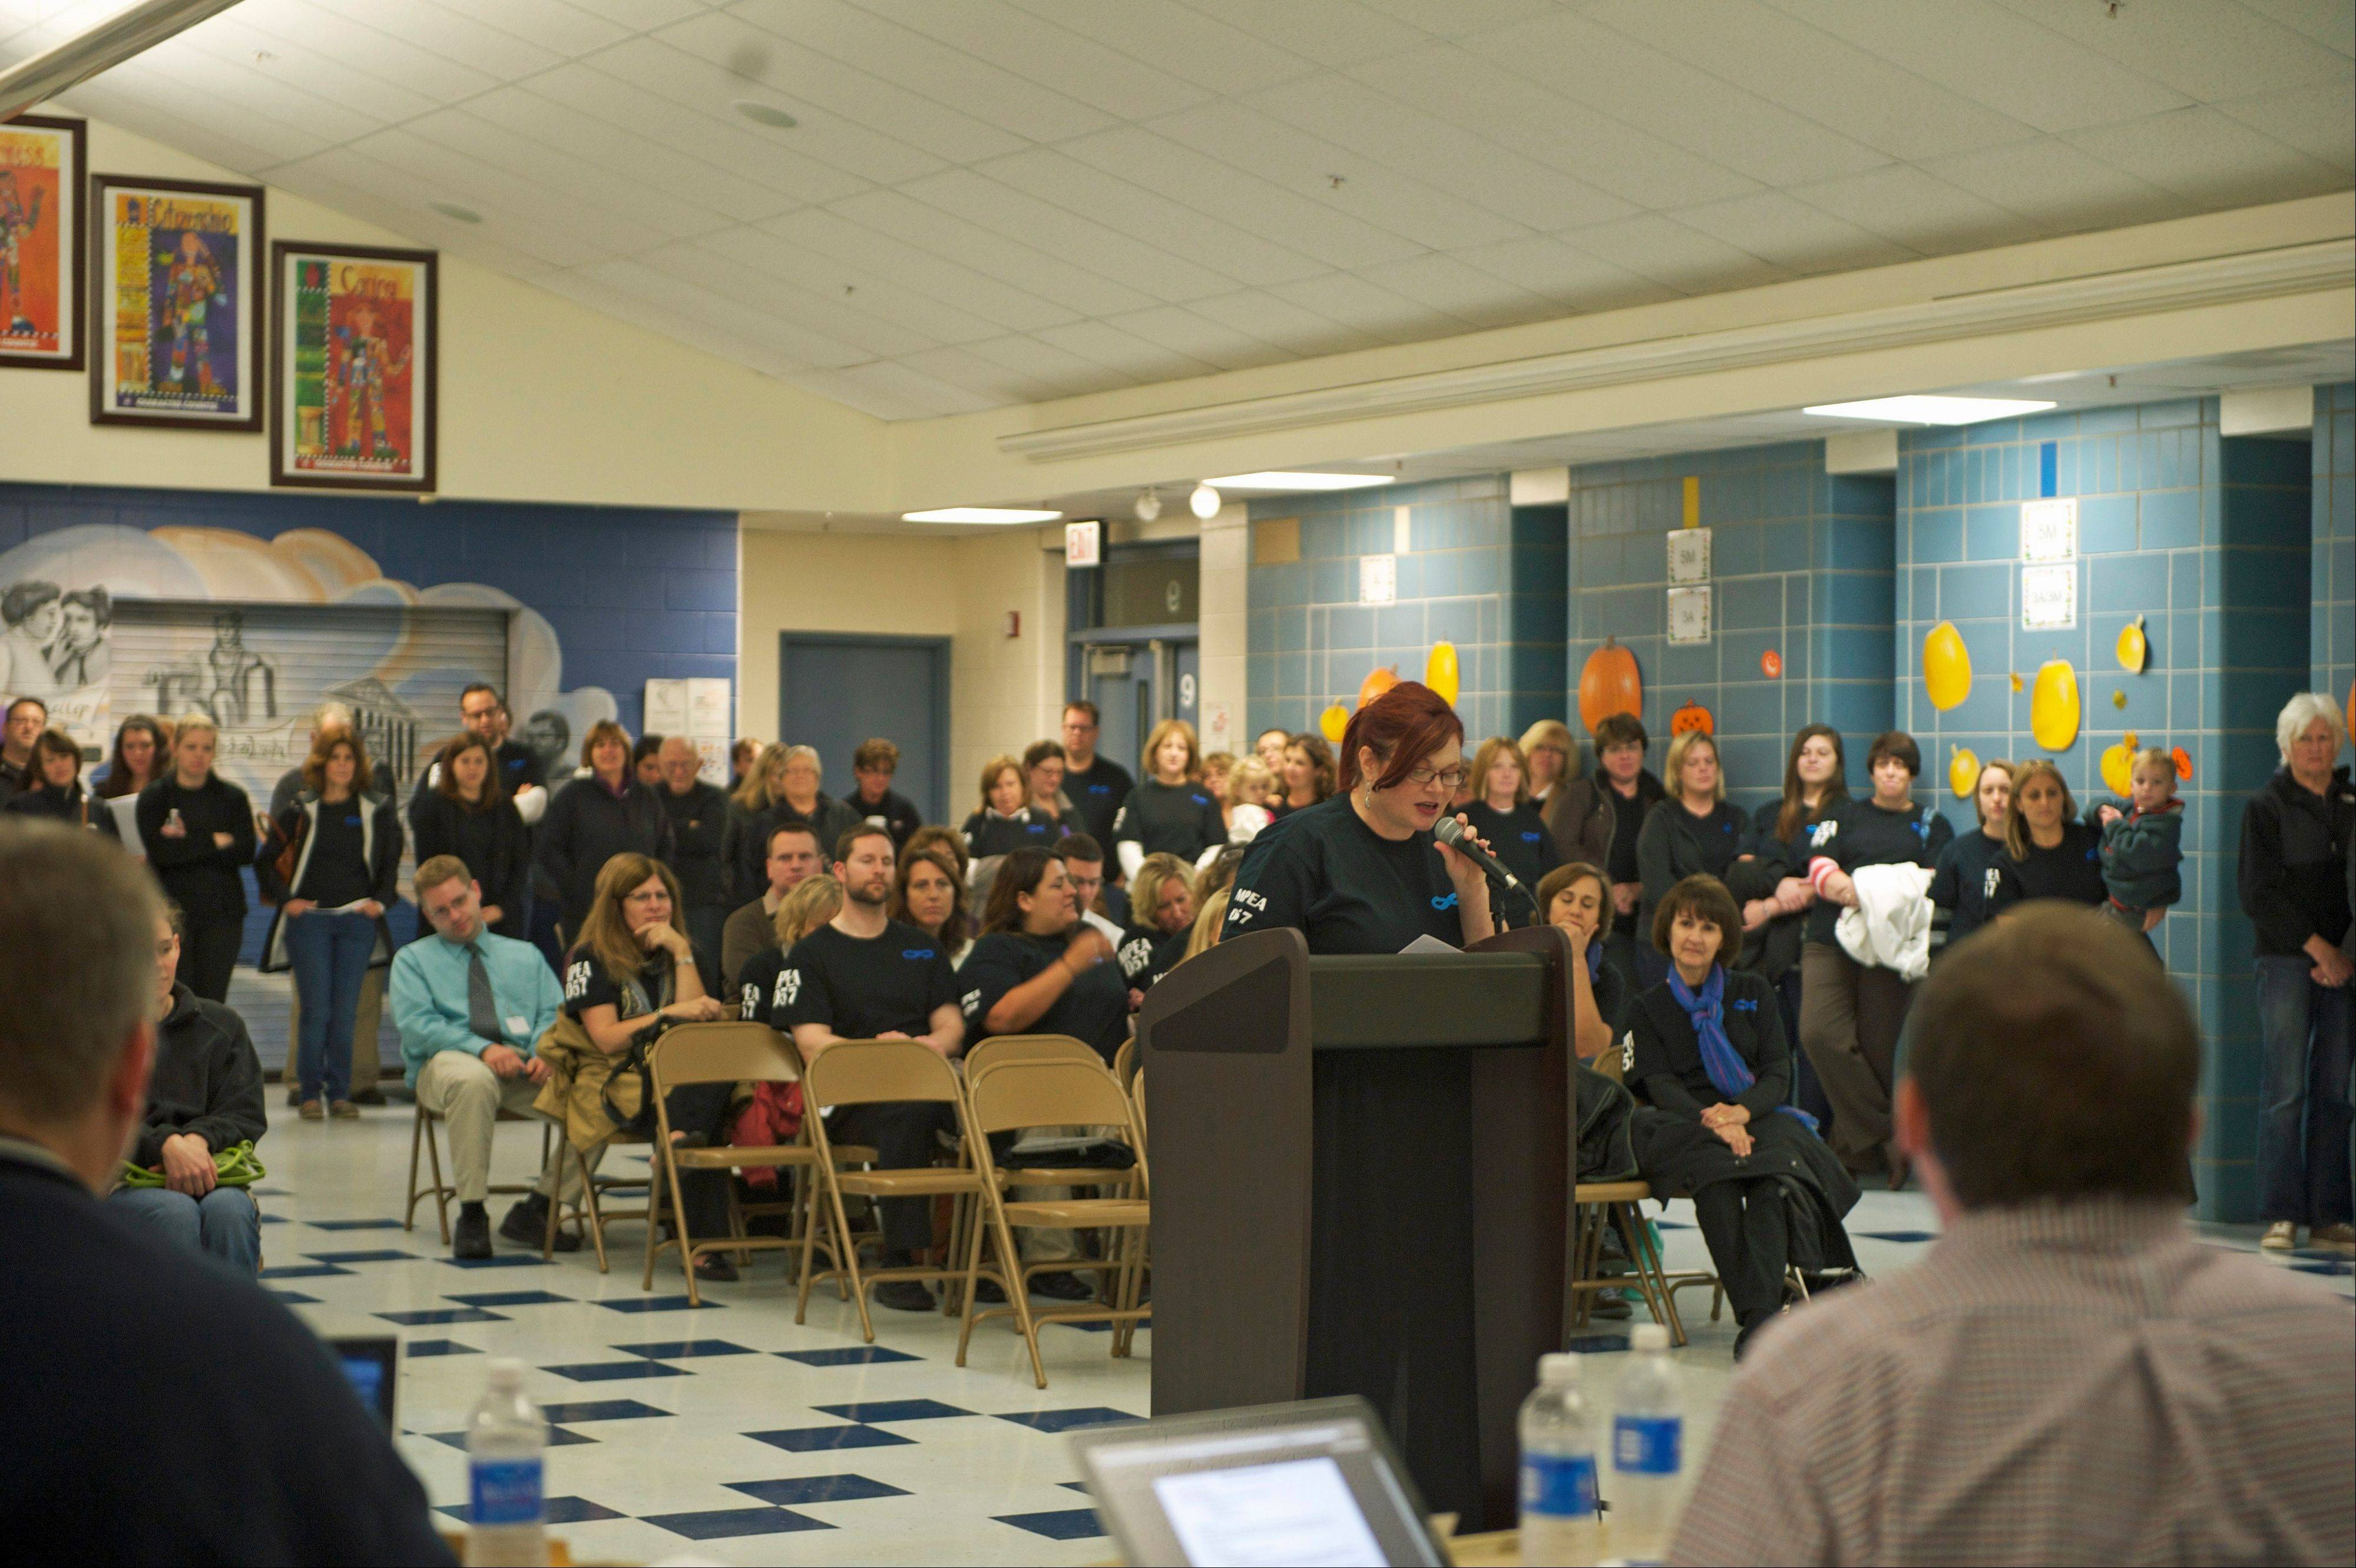 Michelle Walsh, president of the Mount Prospect Education Association, addresses the Mount Prospect Elementary District 57 school board during a recent meeting, with fellow union members behind her. The union and district have decided to ask a federal mediator to help them reach a contract agreement.